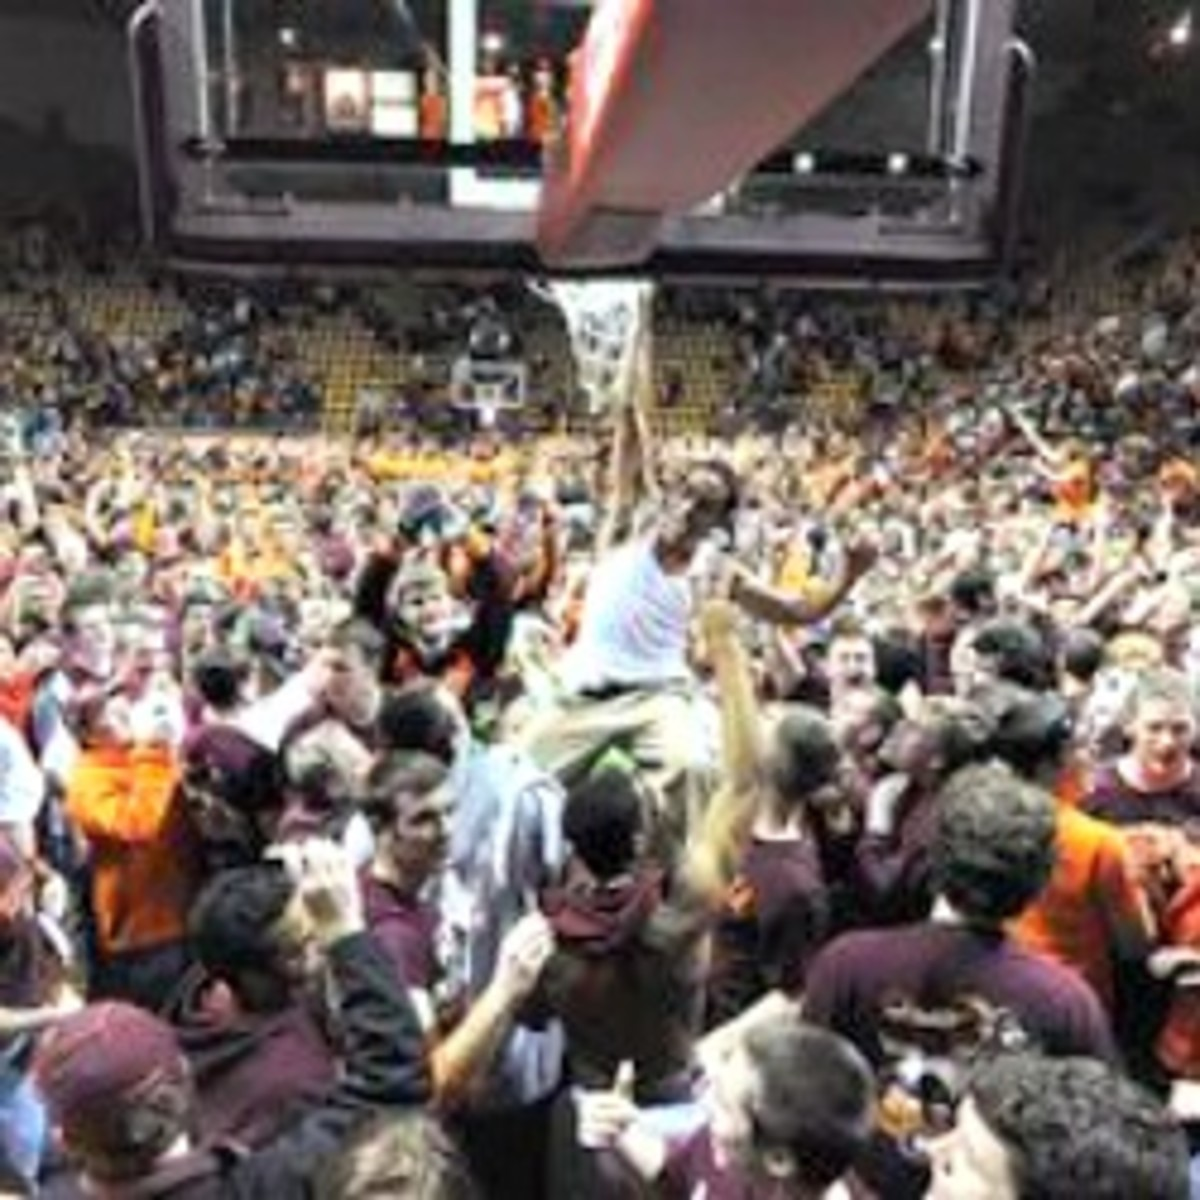 The ACC will discuss fans storming the court in May. (AP Photo/Don Petersen)